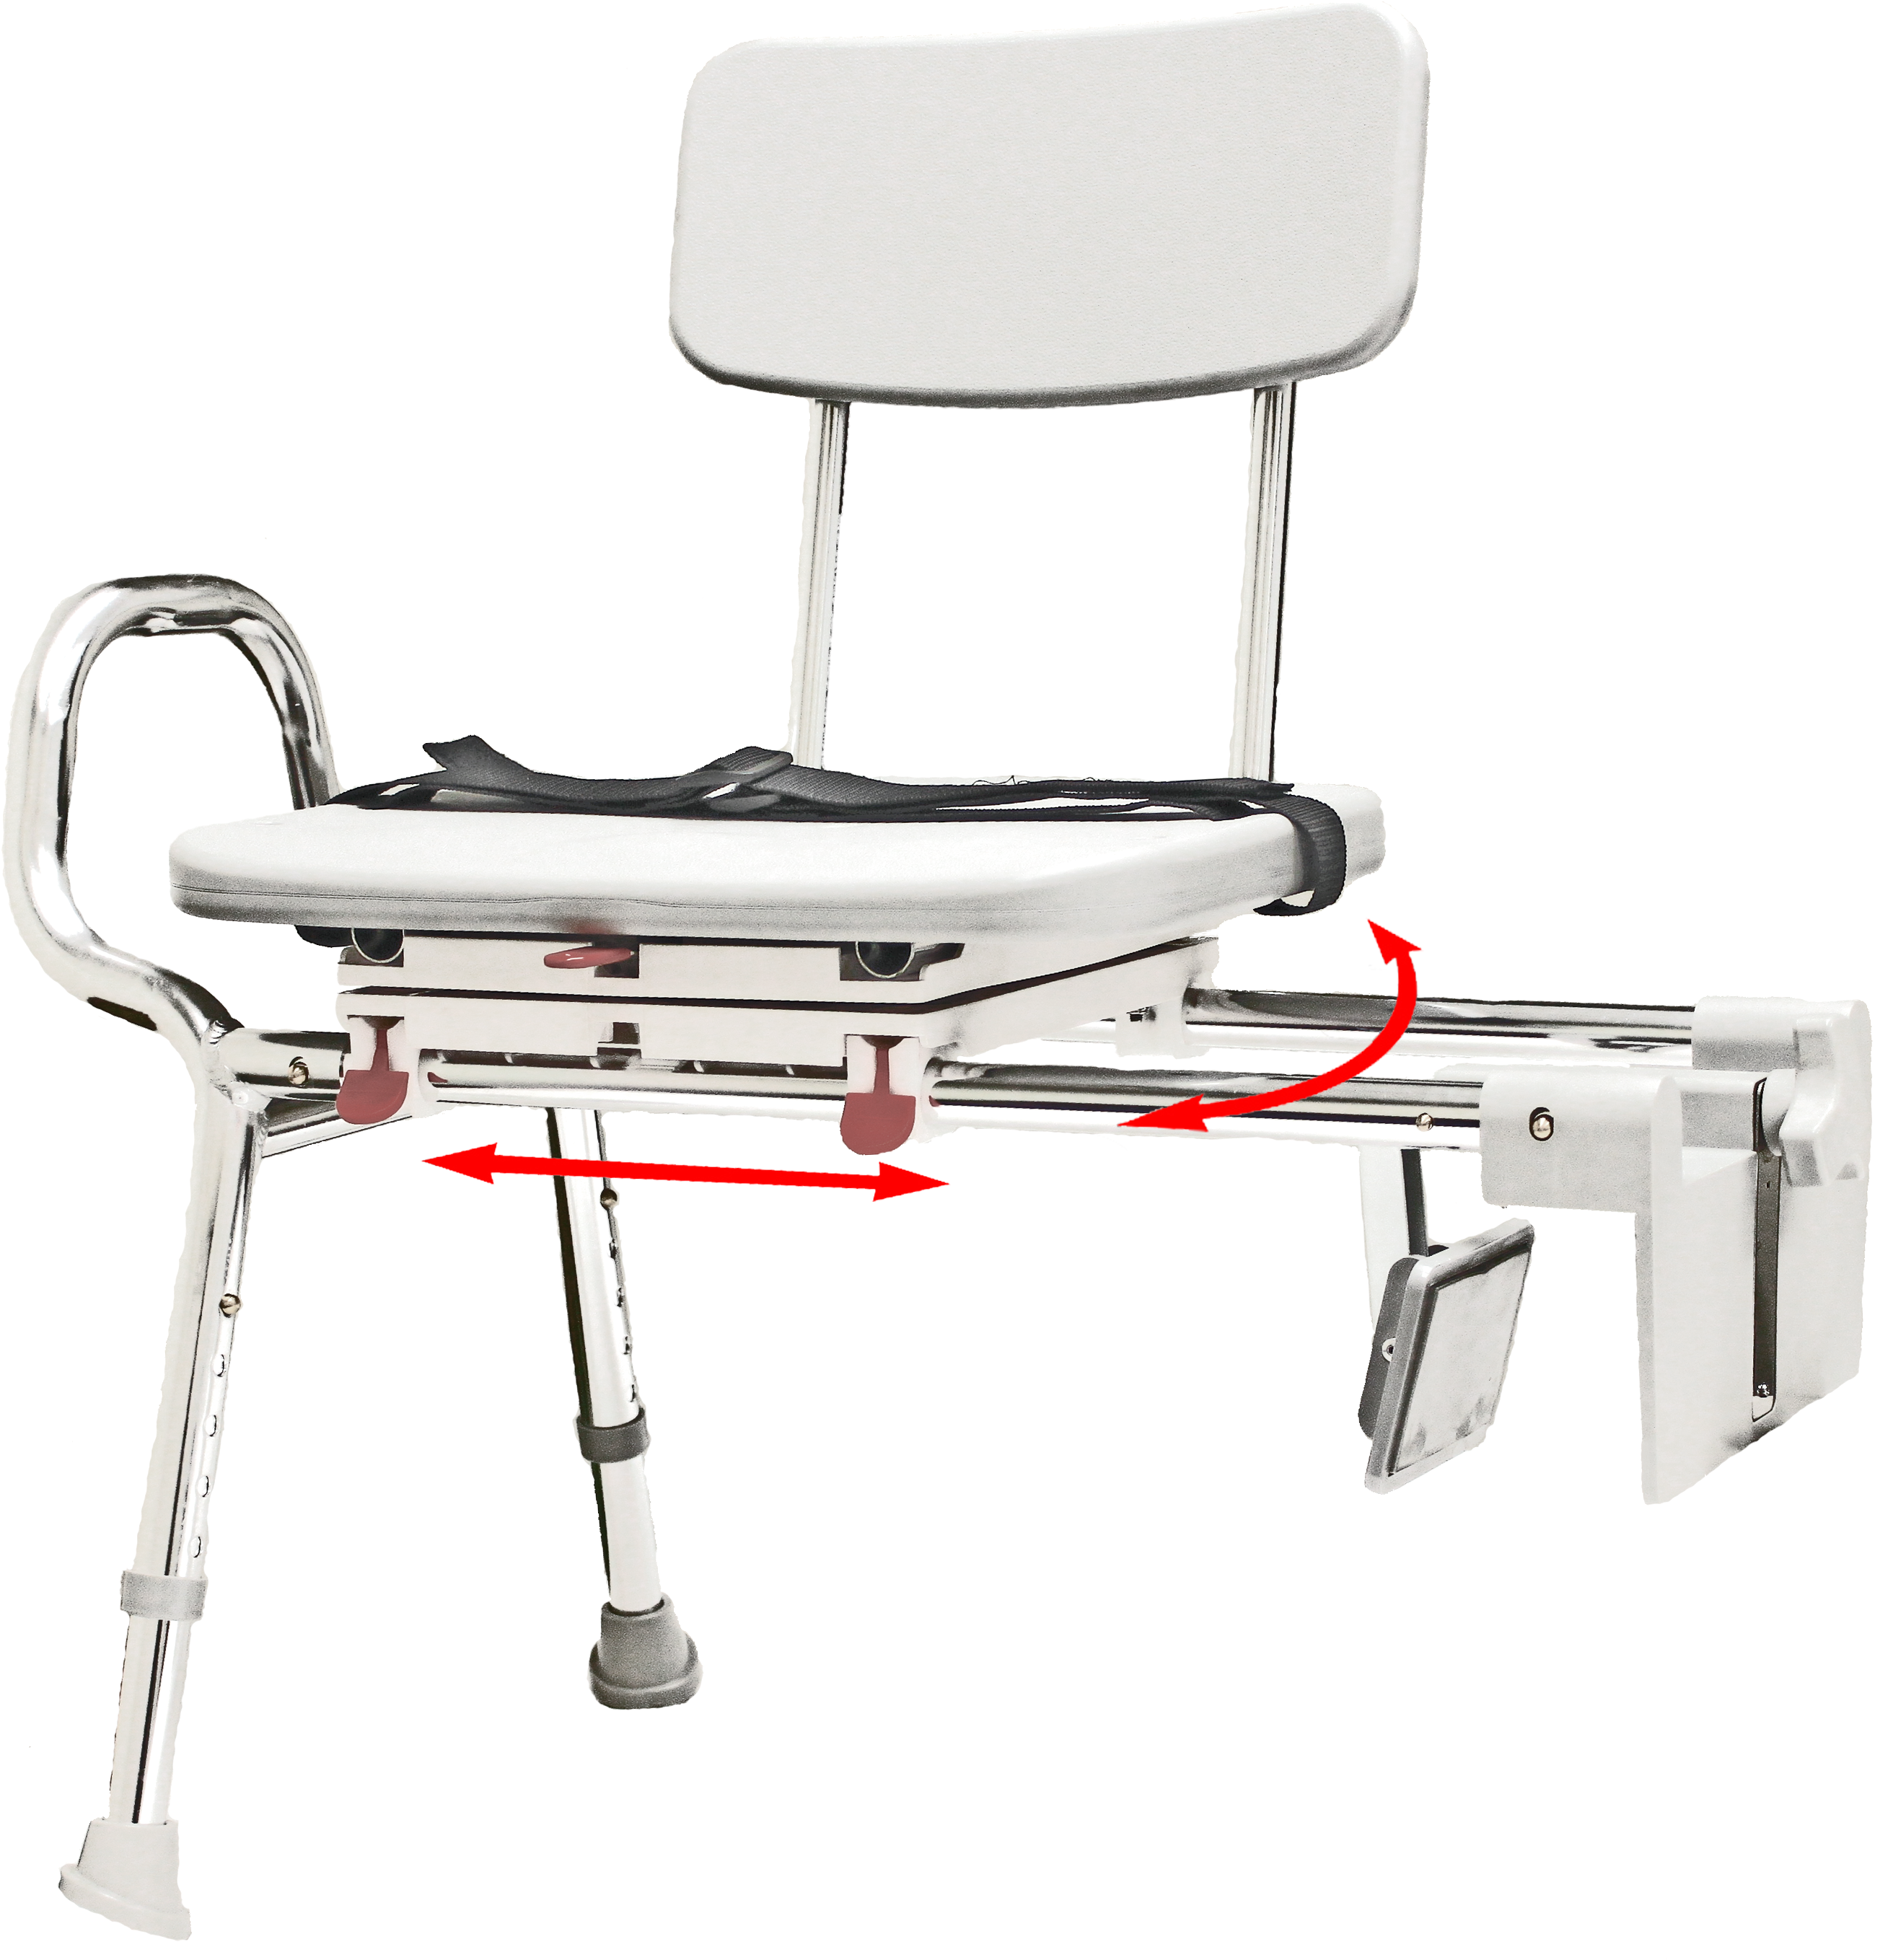 Bathtub Seats for The Elderly | Adjustable Transfer Bench | Transfer Tub Bench